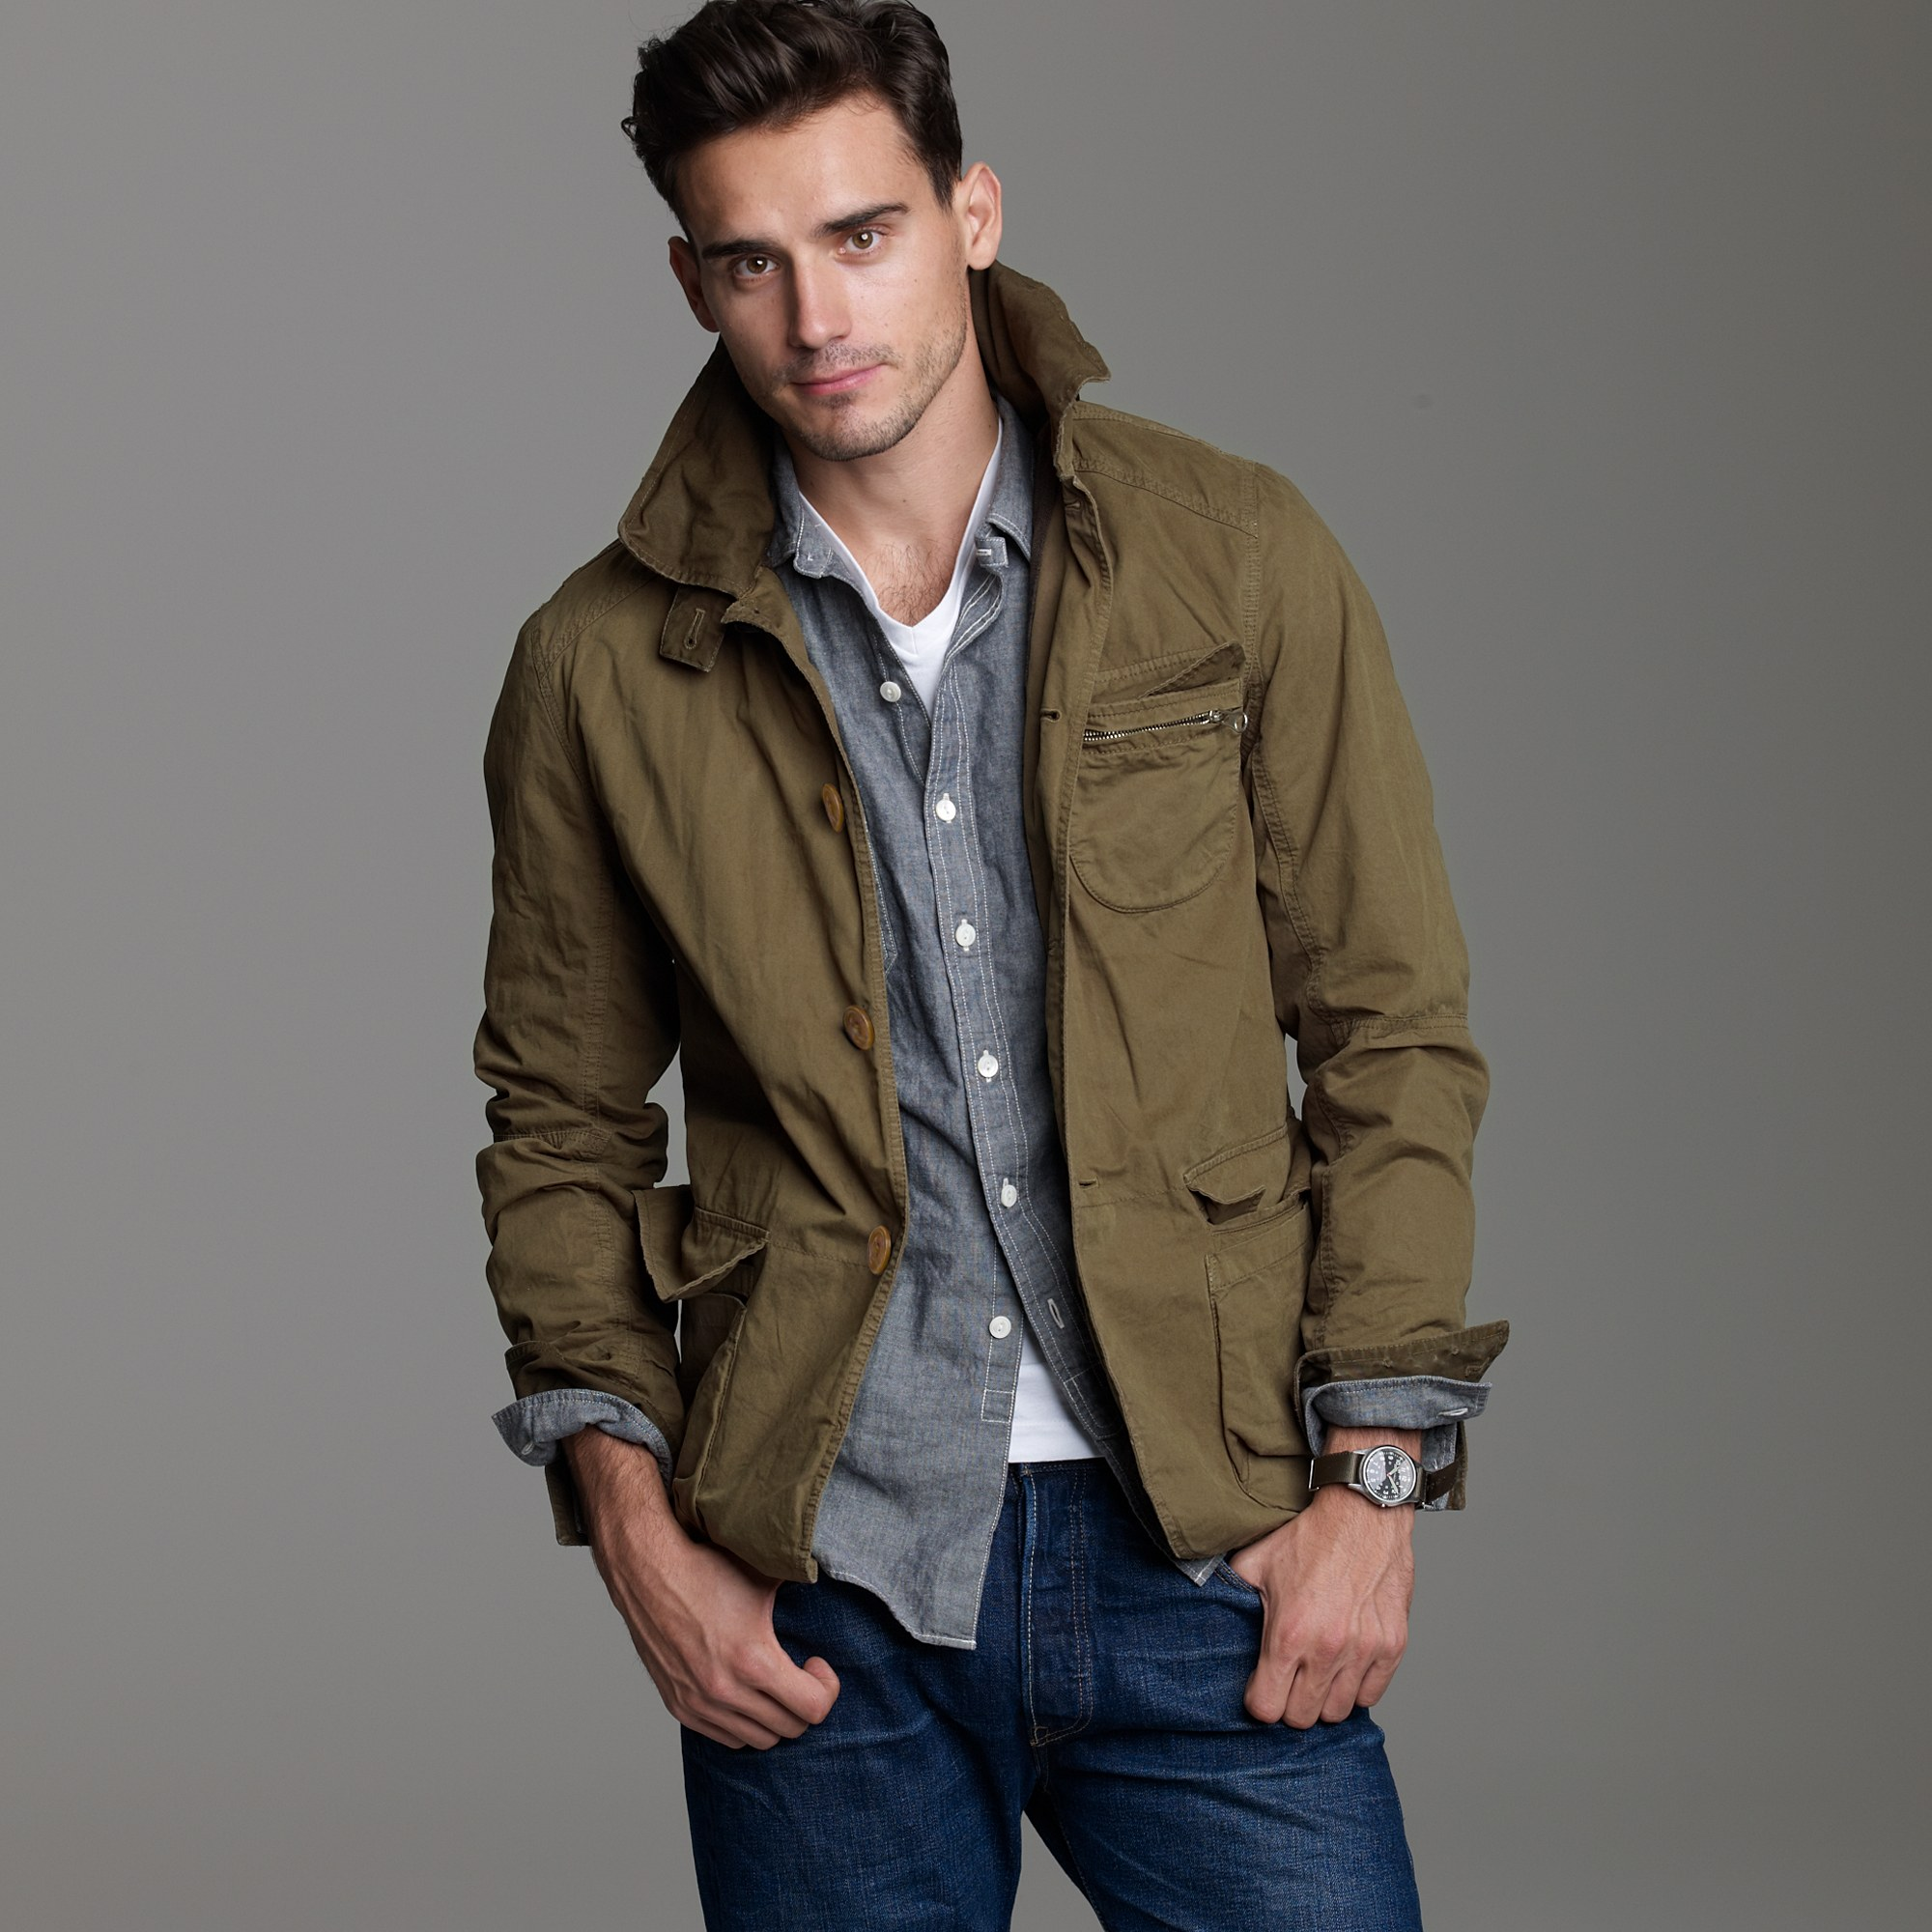 Trapper jacket in green for men lyst for J crew mens outfits